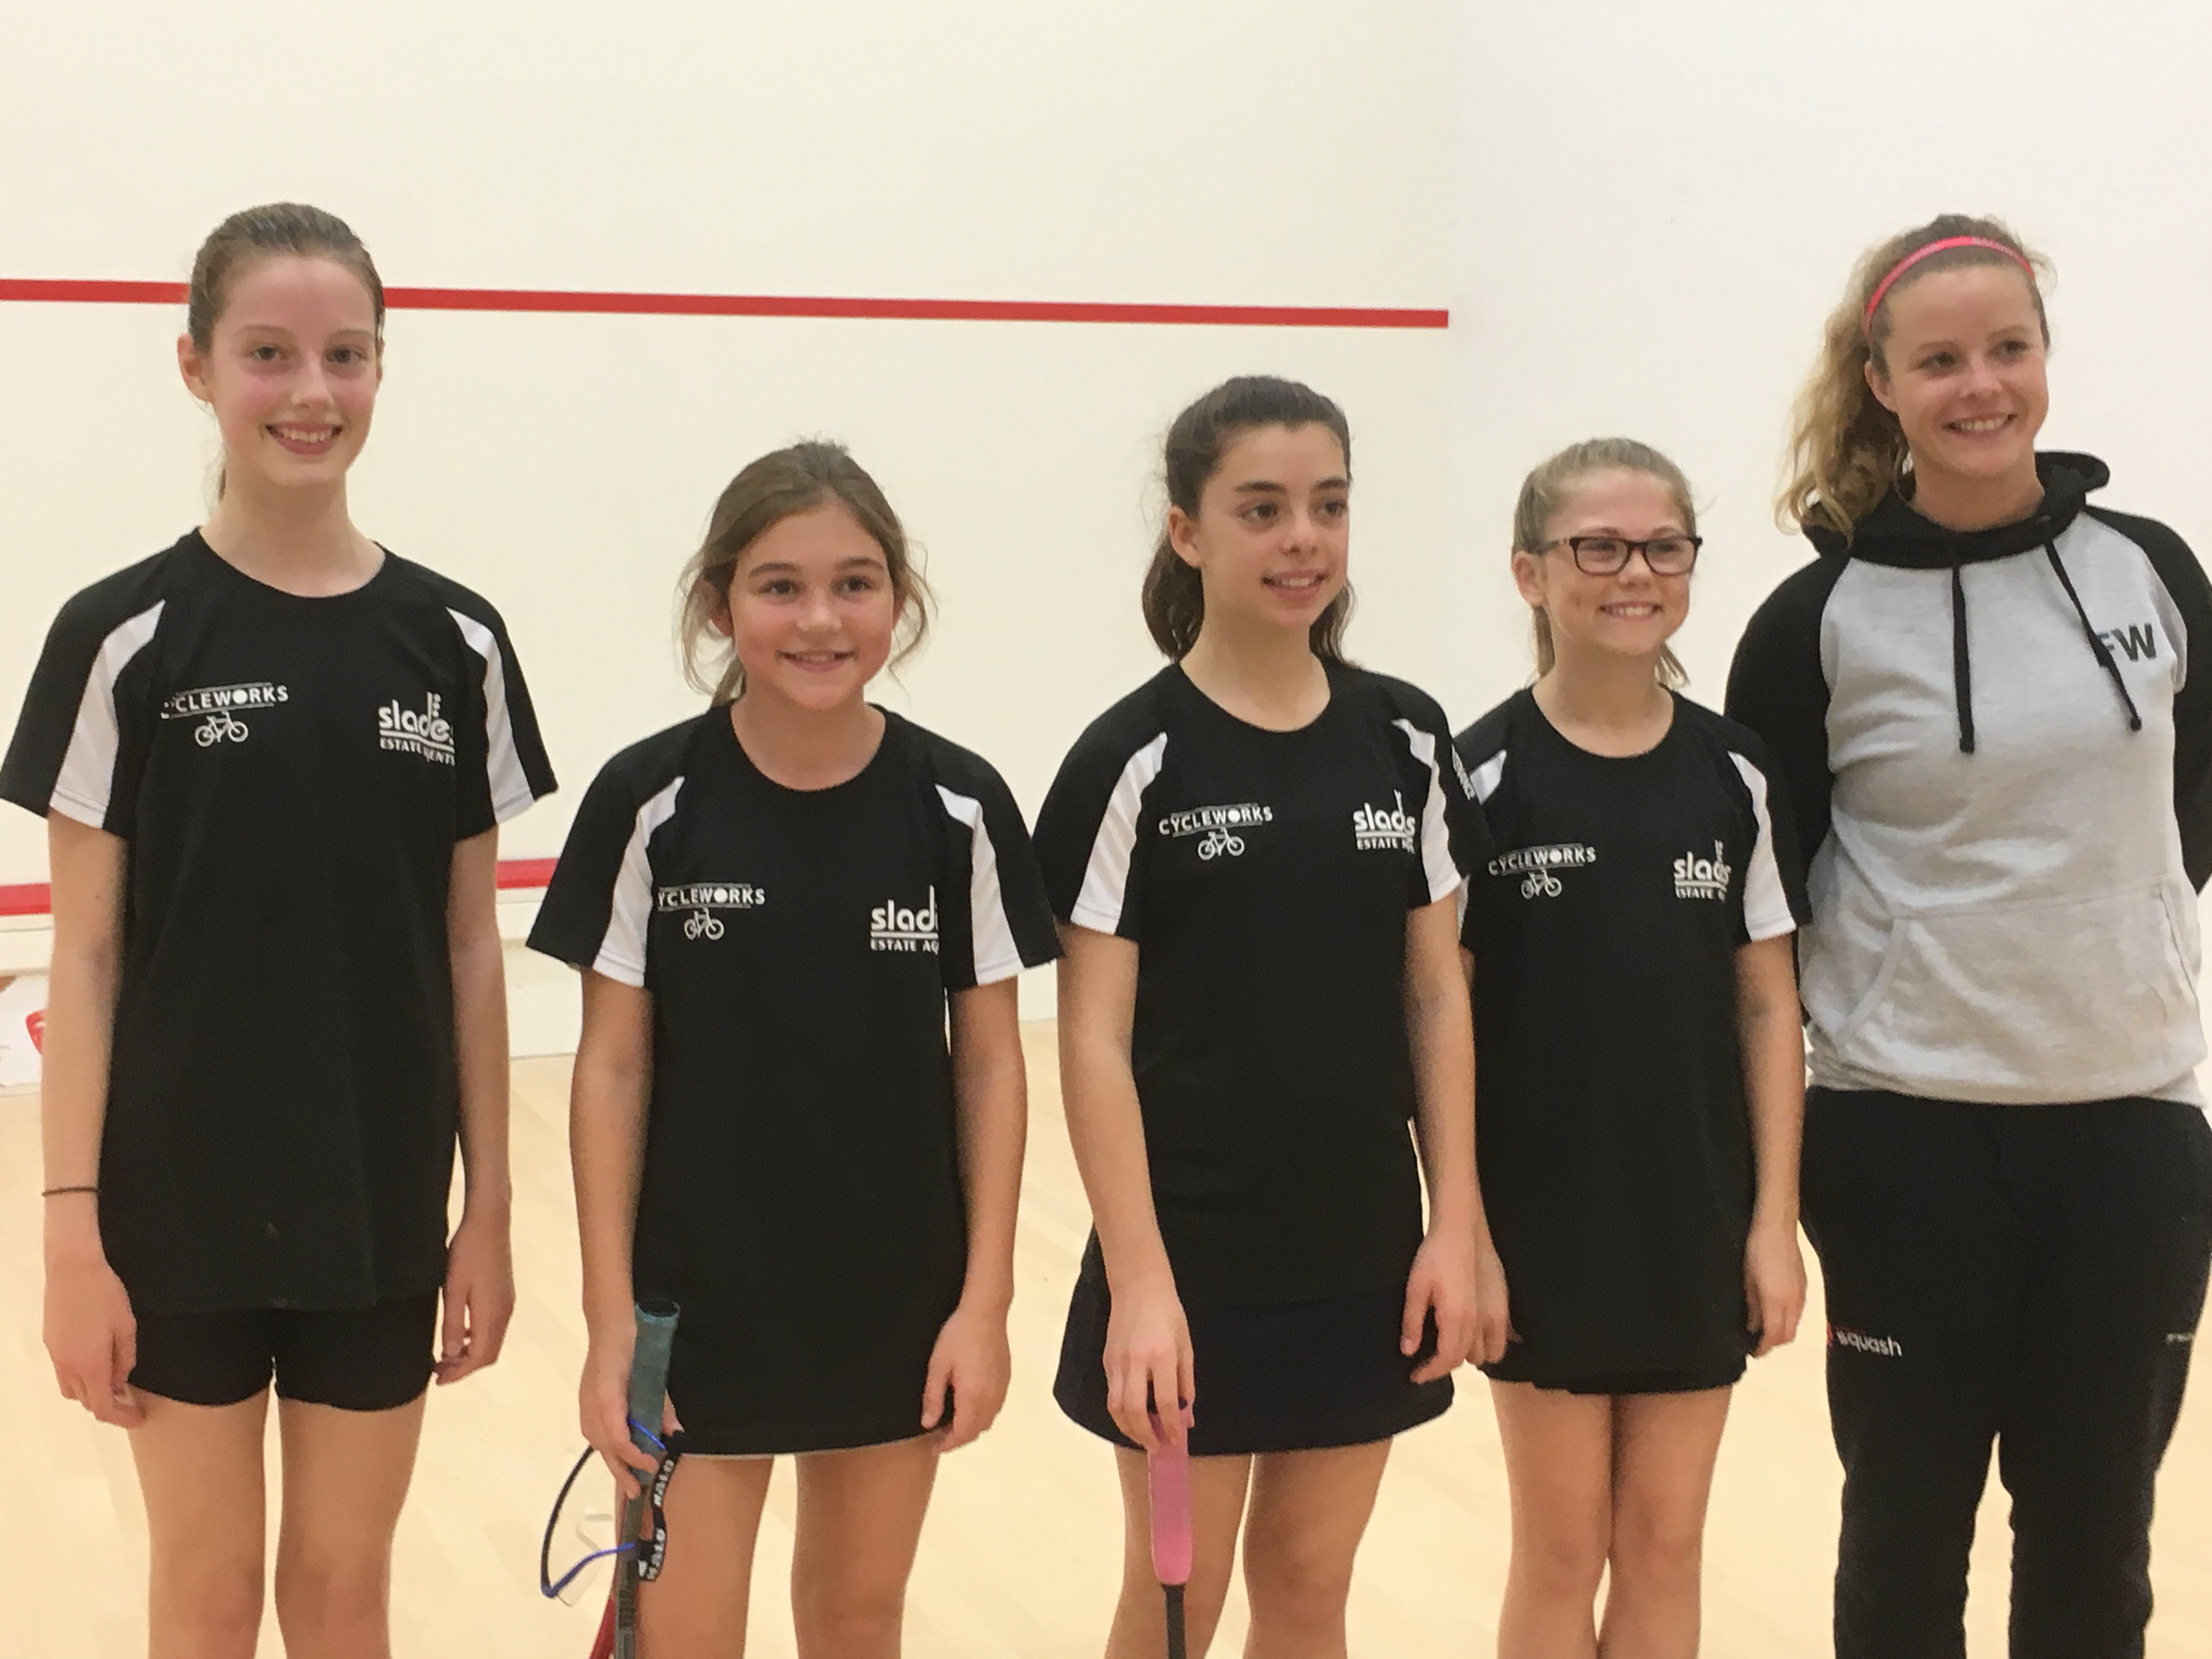 Girls U13 team and squash coach - Left to right; Nia Edwards, India McCrudden, Amy Campbell-Wynter, Abi Russell, Fran White